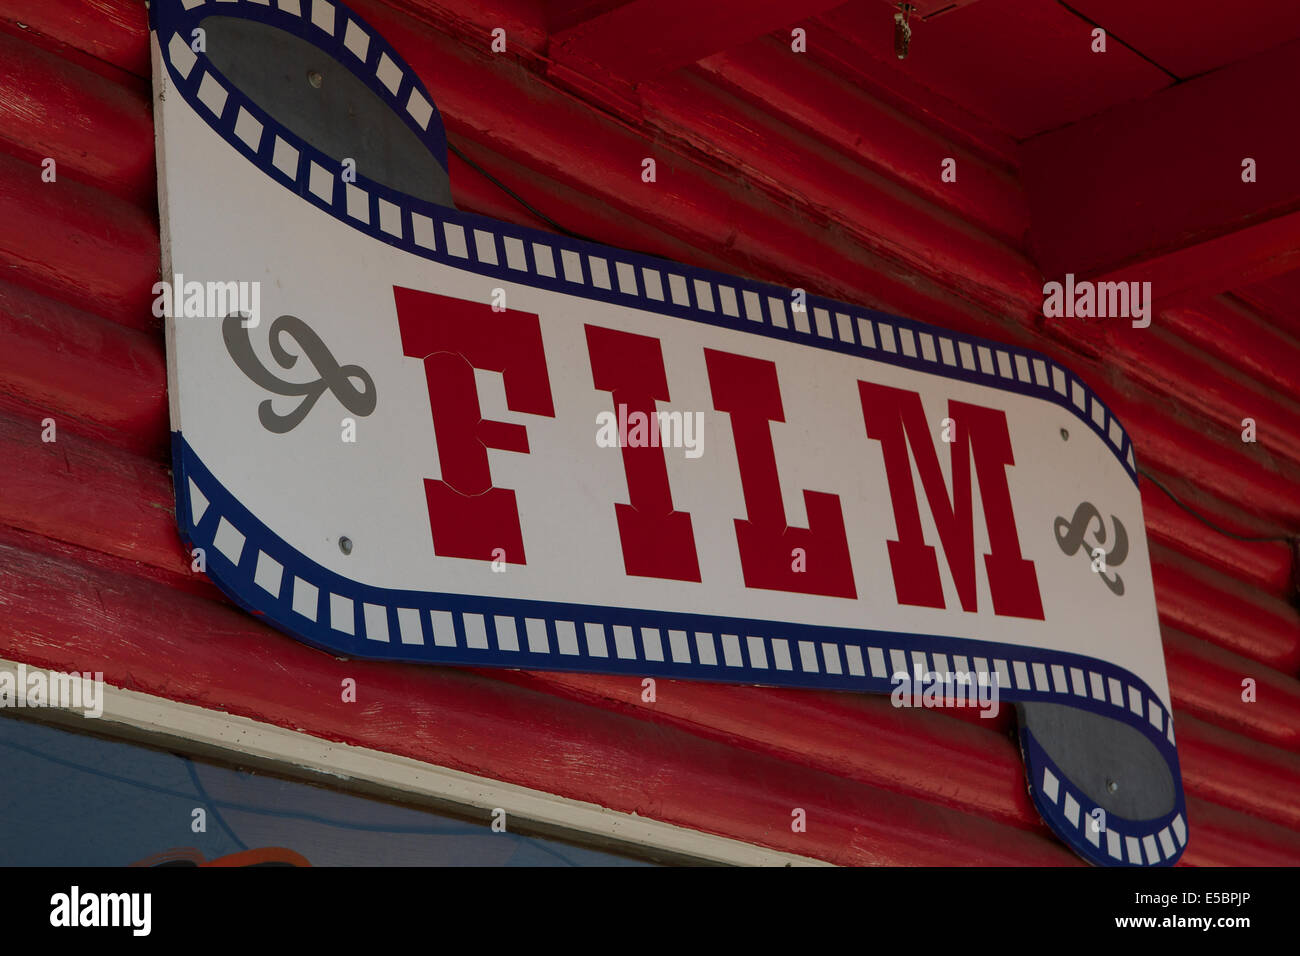 Camera film sign outside a sporting store in Bridgeport California Stock Photo